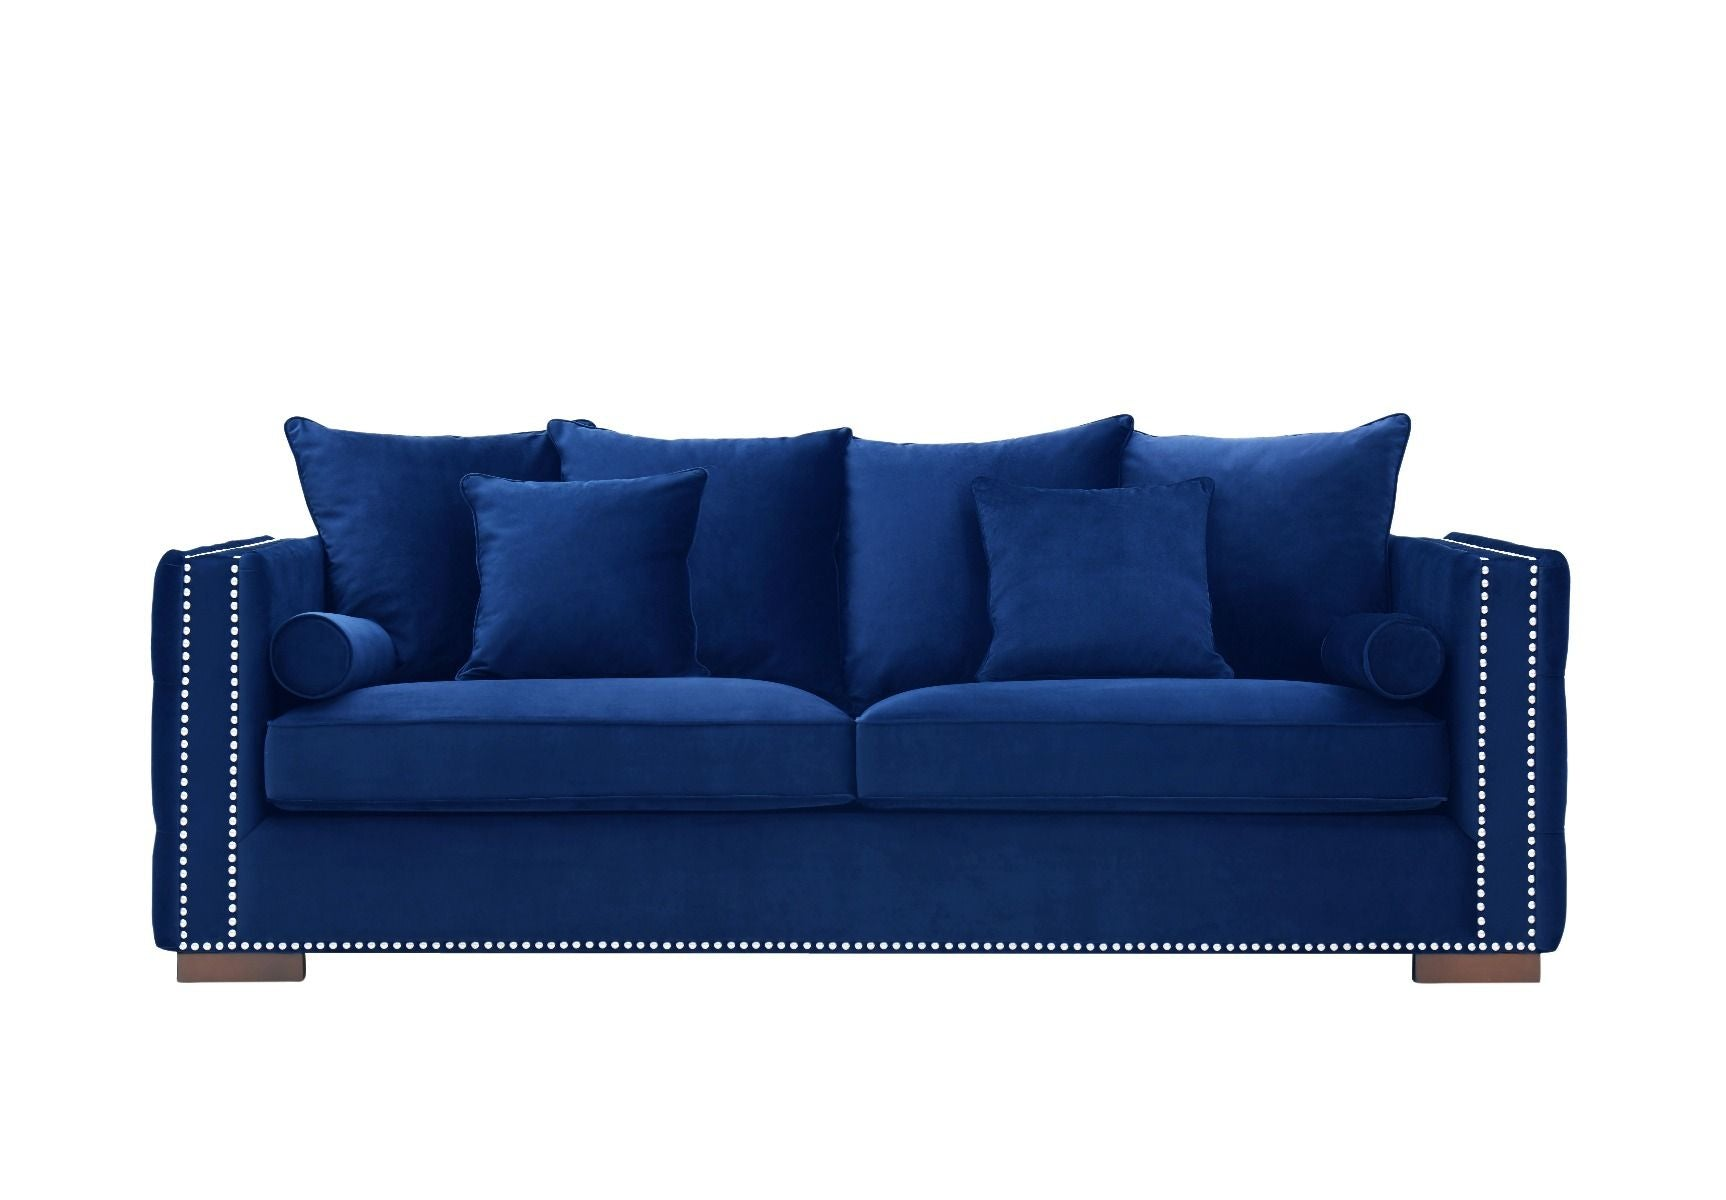 Moscow 3 Seater Sofa - Royal Blue